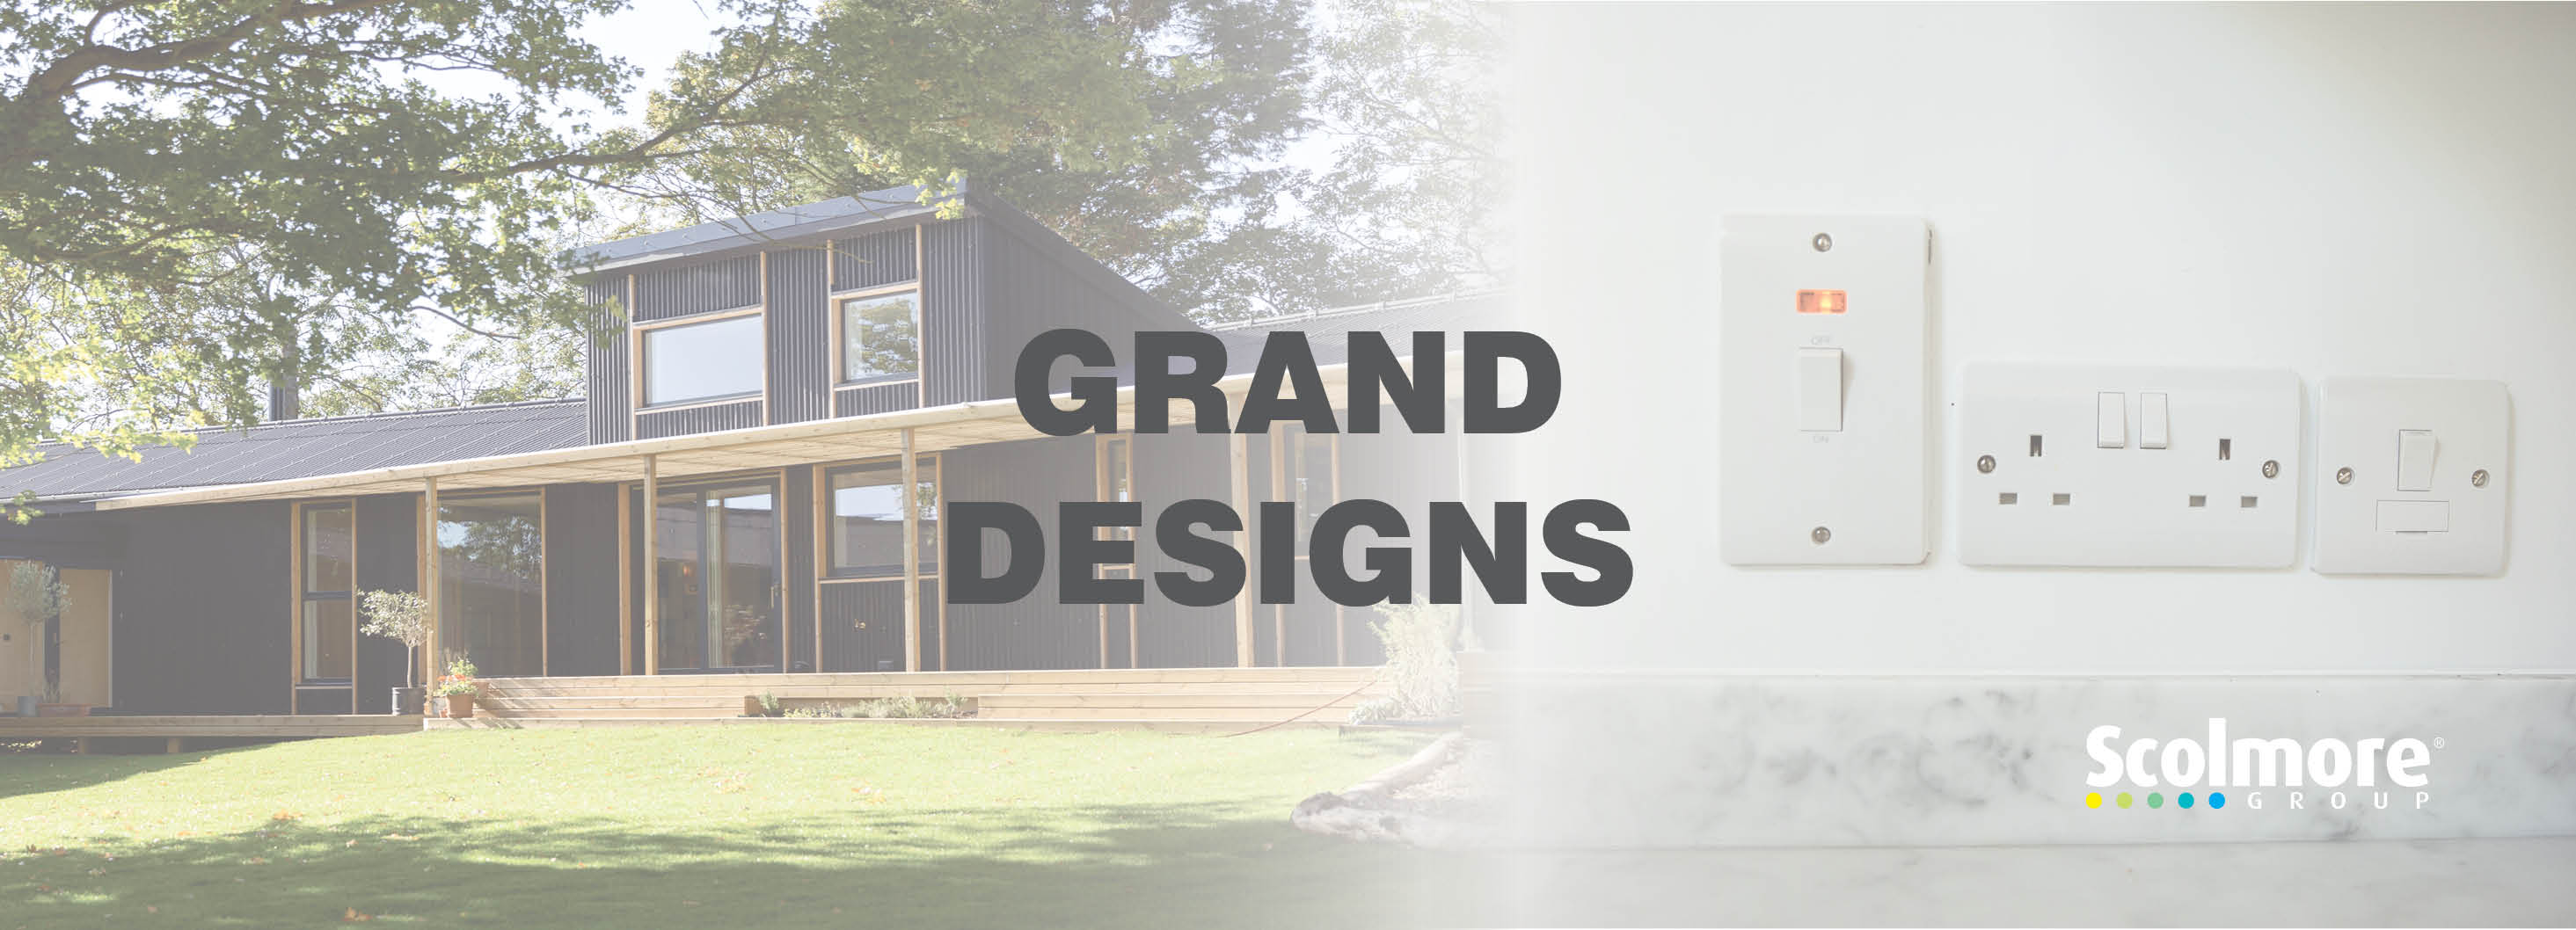 Mode provides a healthy solution for Grand Designs project